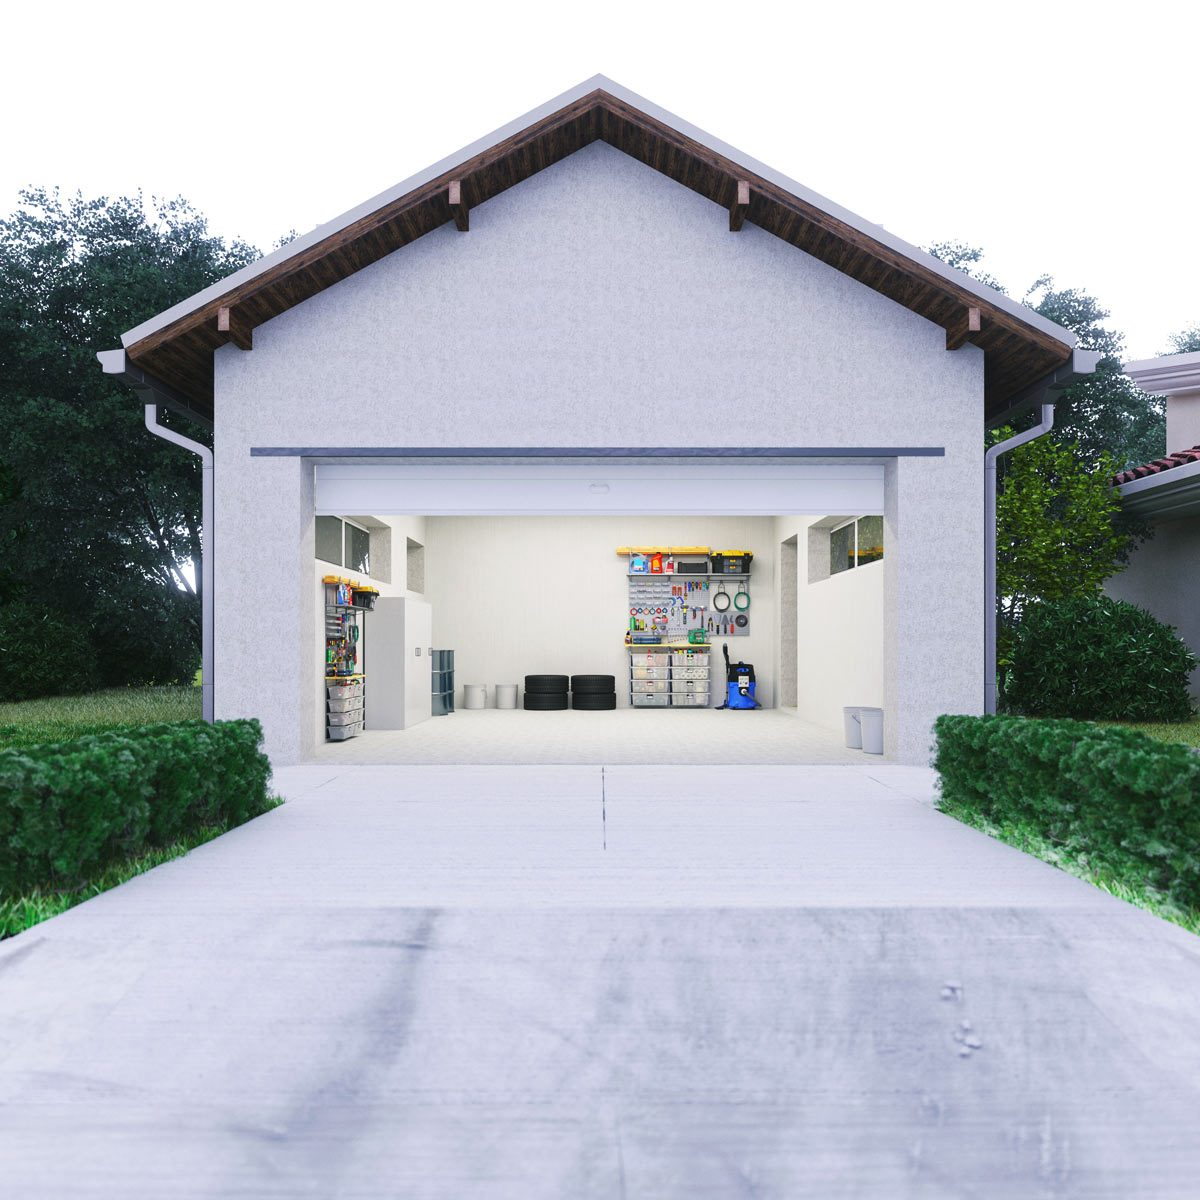 8 Garage Paint Ideas To Consider Inside And Out Family Handyman